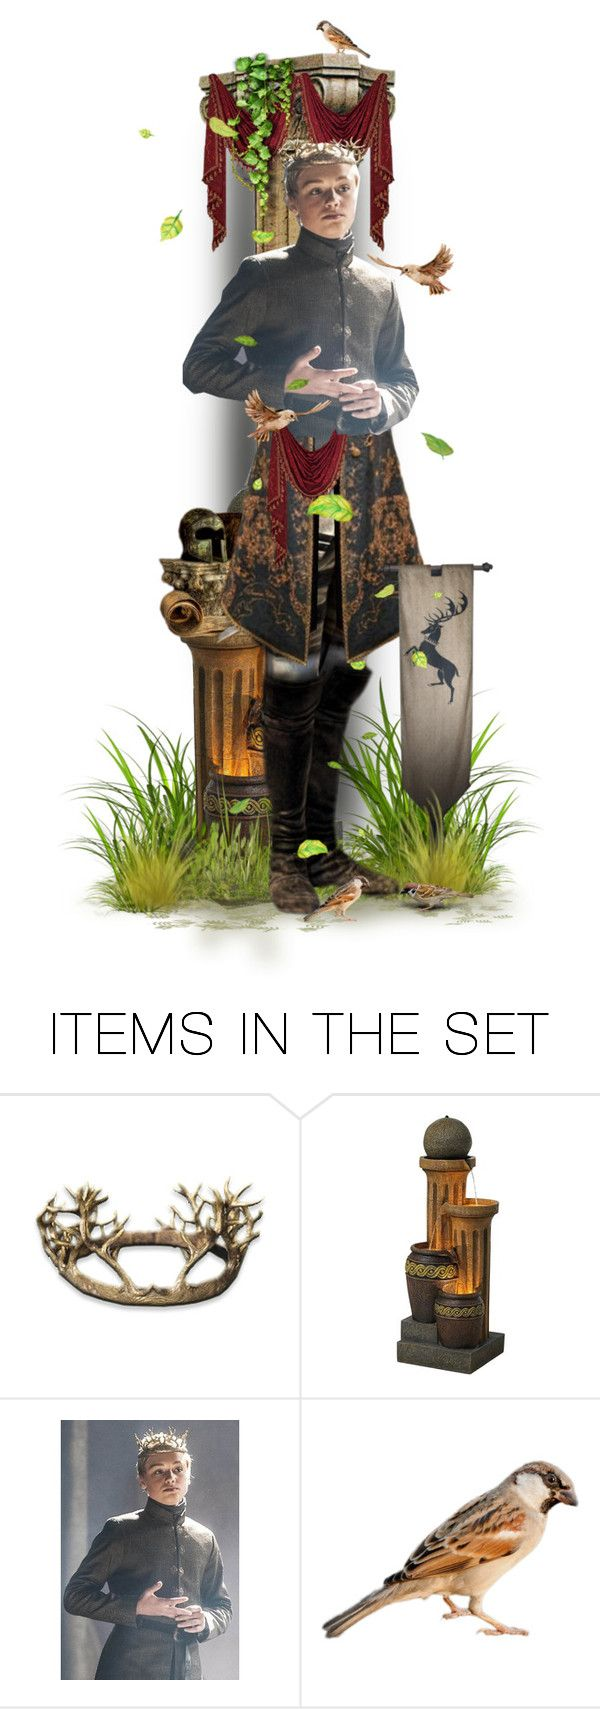 """""""King Tommen Baratheon"""" by girlinthebigbox ❤ liked on Polyvore featuring art, GameOfThrones, got and tommenbaratheon"""